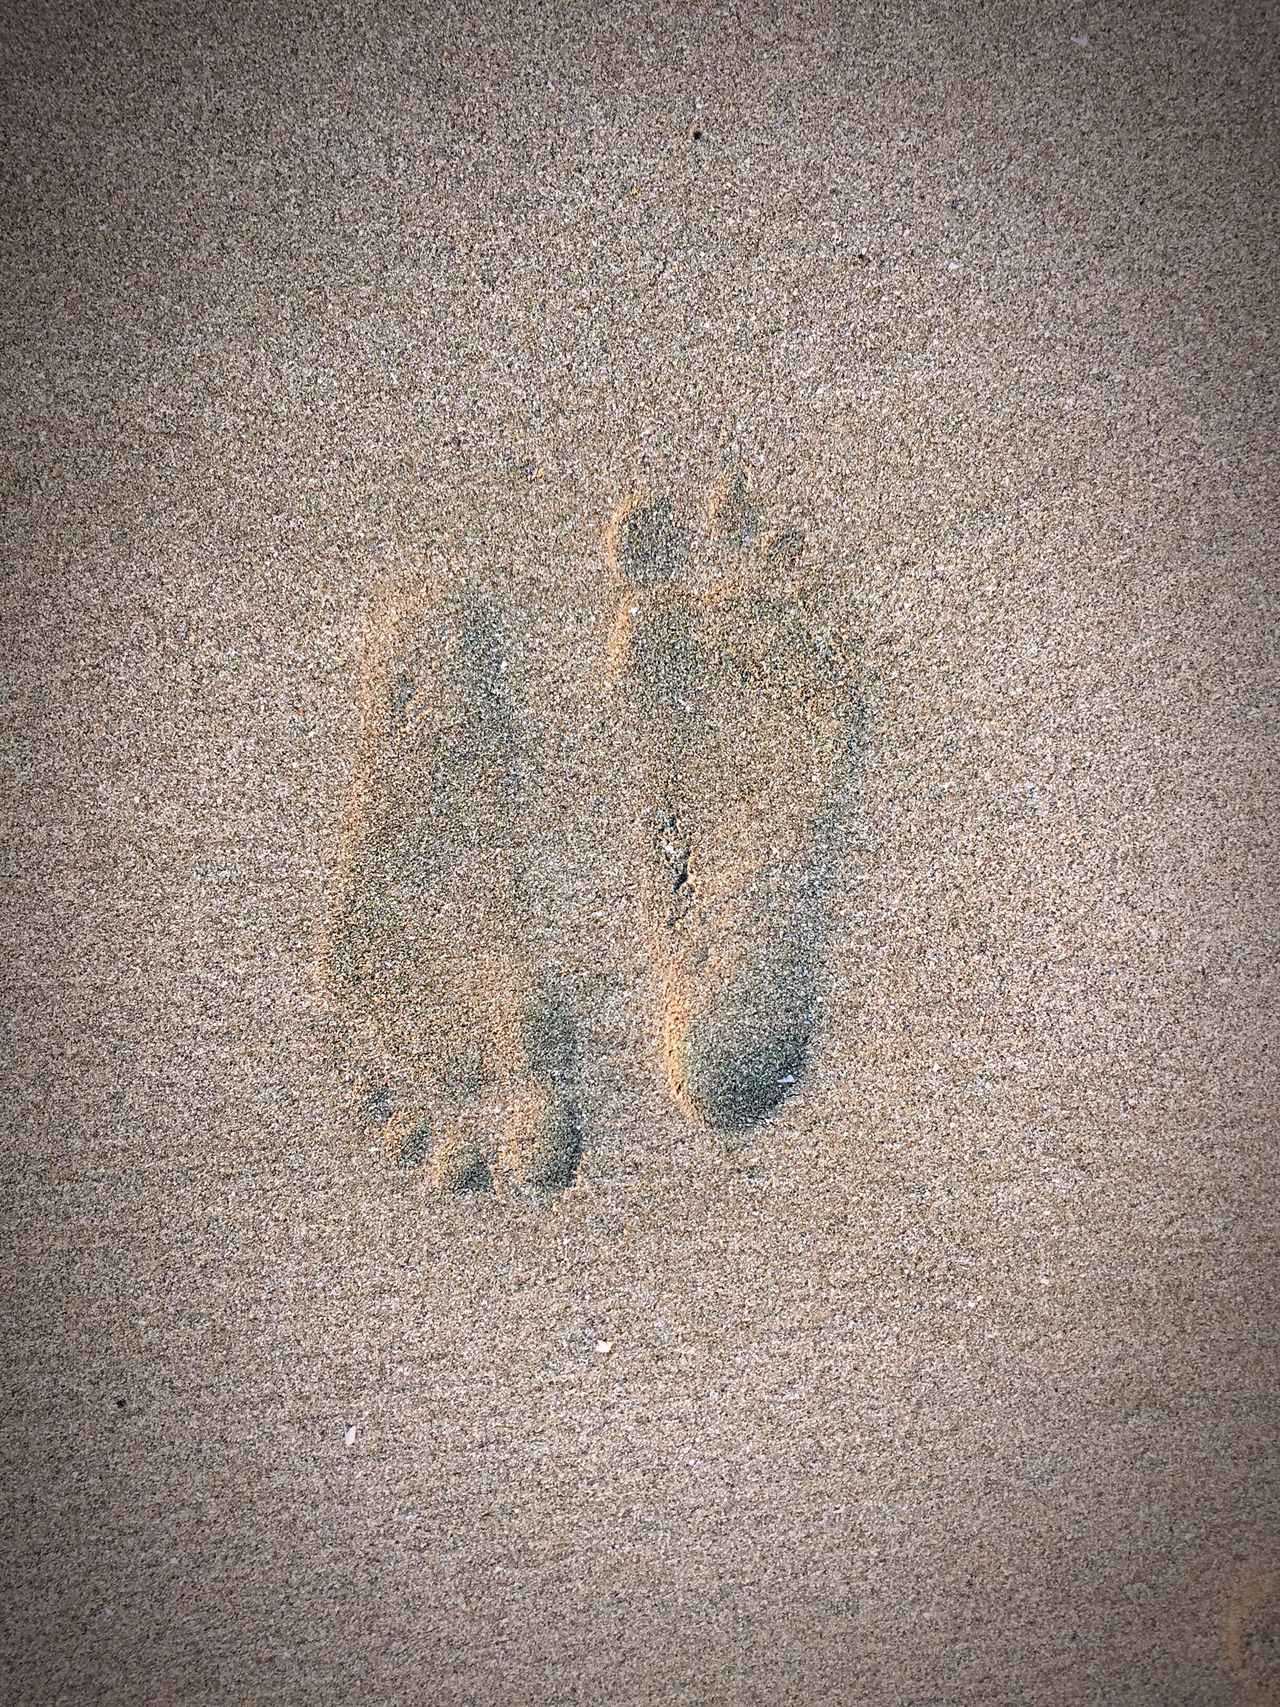 Sand Outdoors No People Nature Handprint Day Beach Paw Print Together Close To You Only Me Only You Thailand Timeless FootPrint Footprints Art Is Everywhere